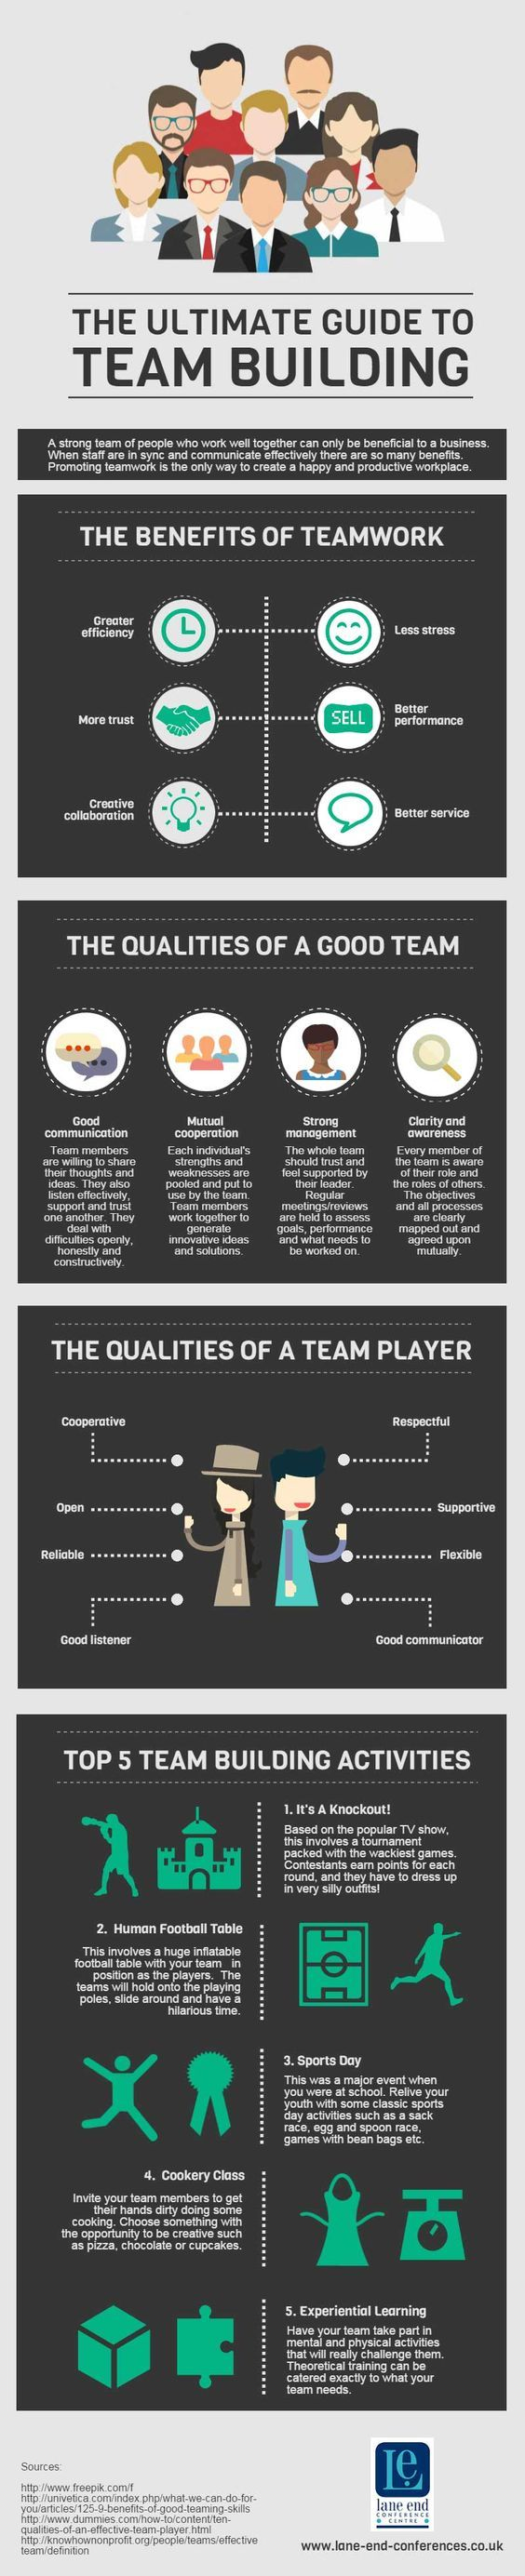 The Ultimate Guide to Team Building